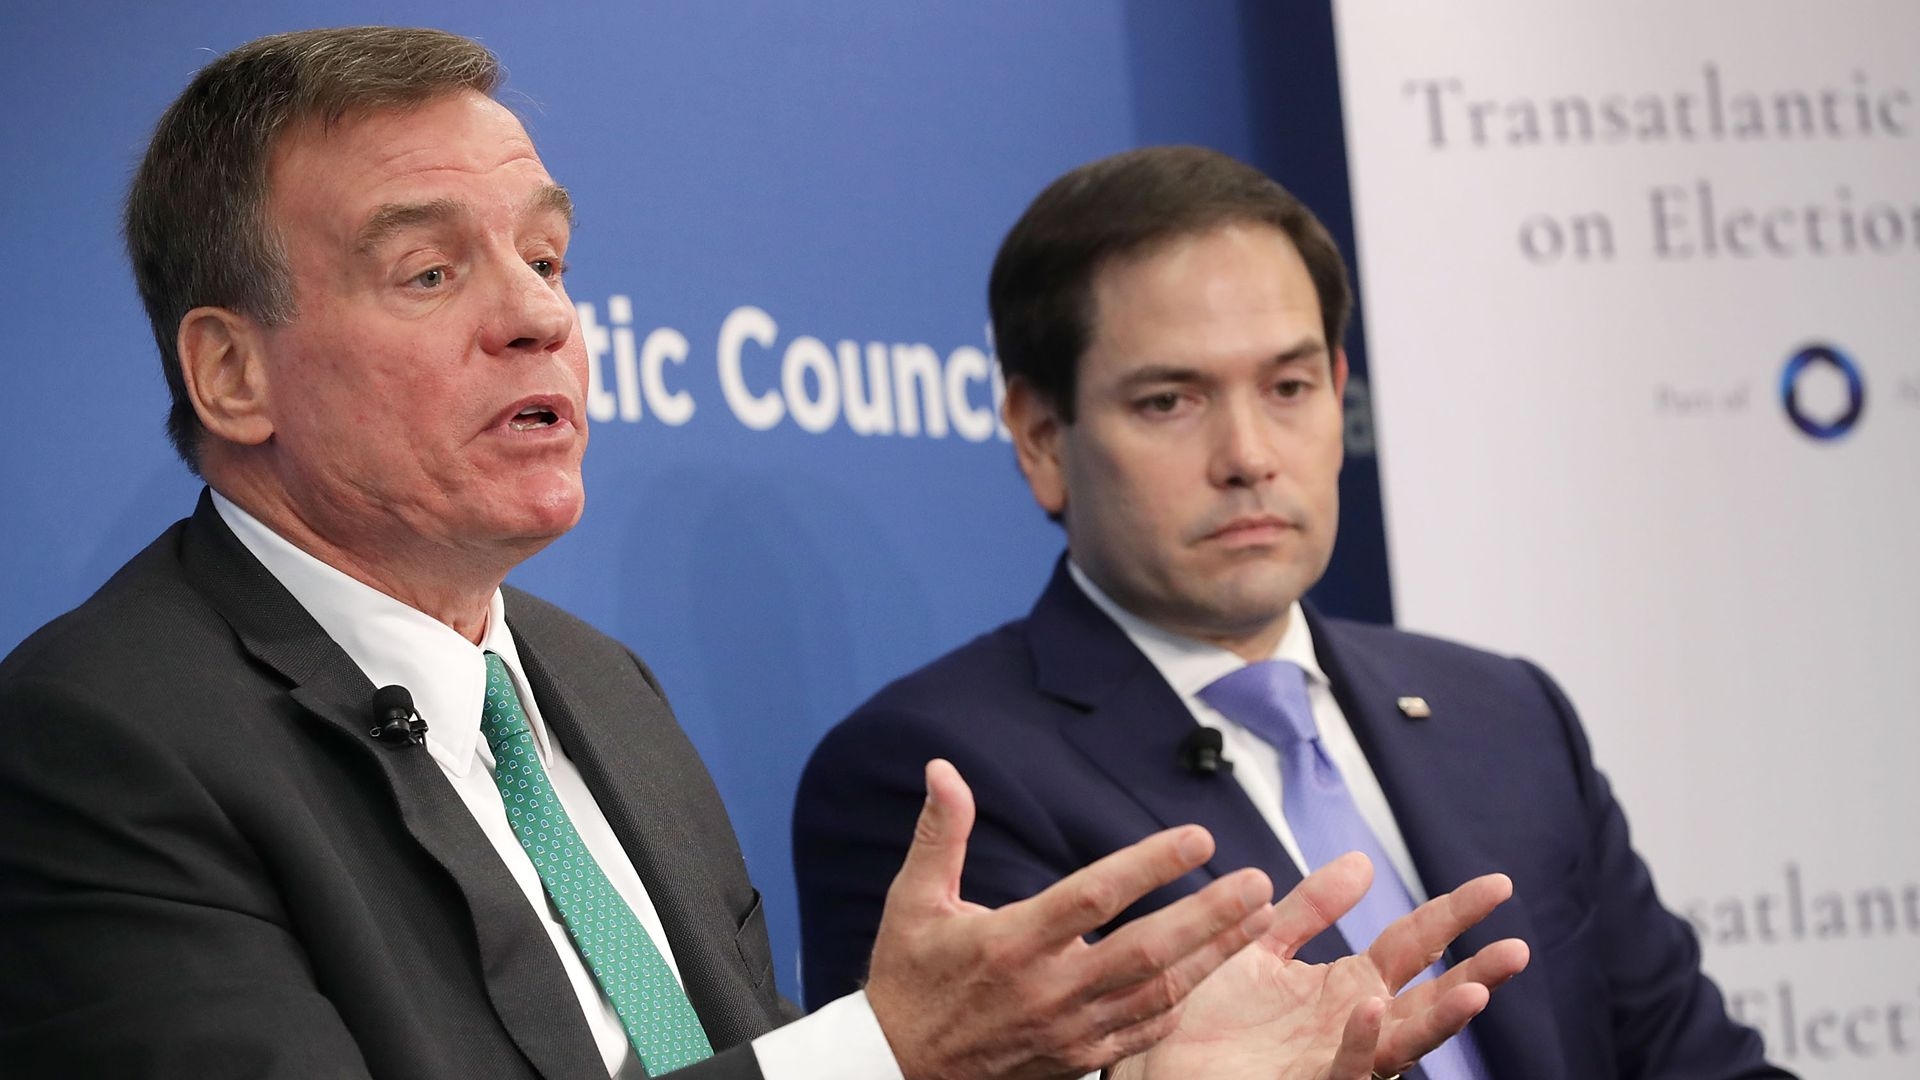 Mark Warner gestures while talking and Marco Rubio looks on sternly